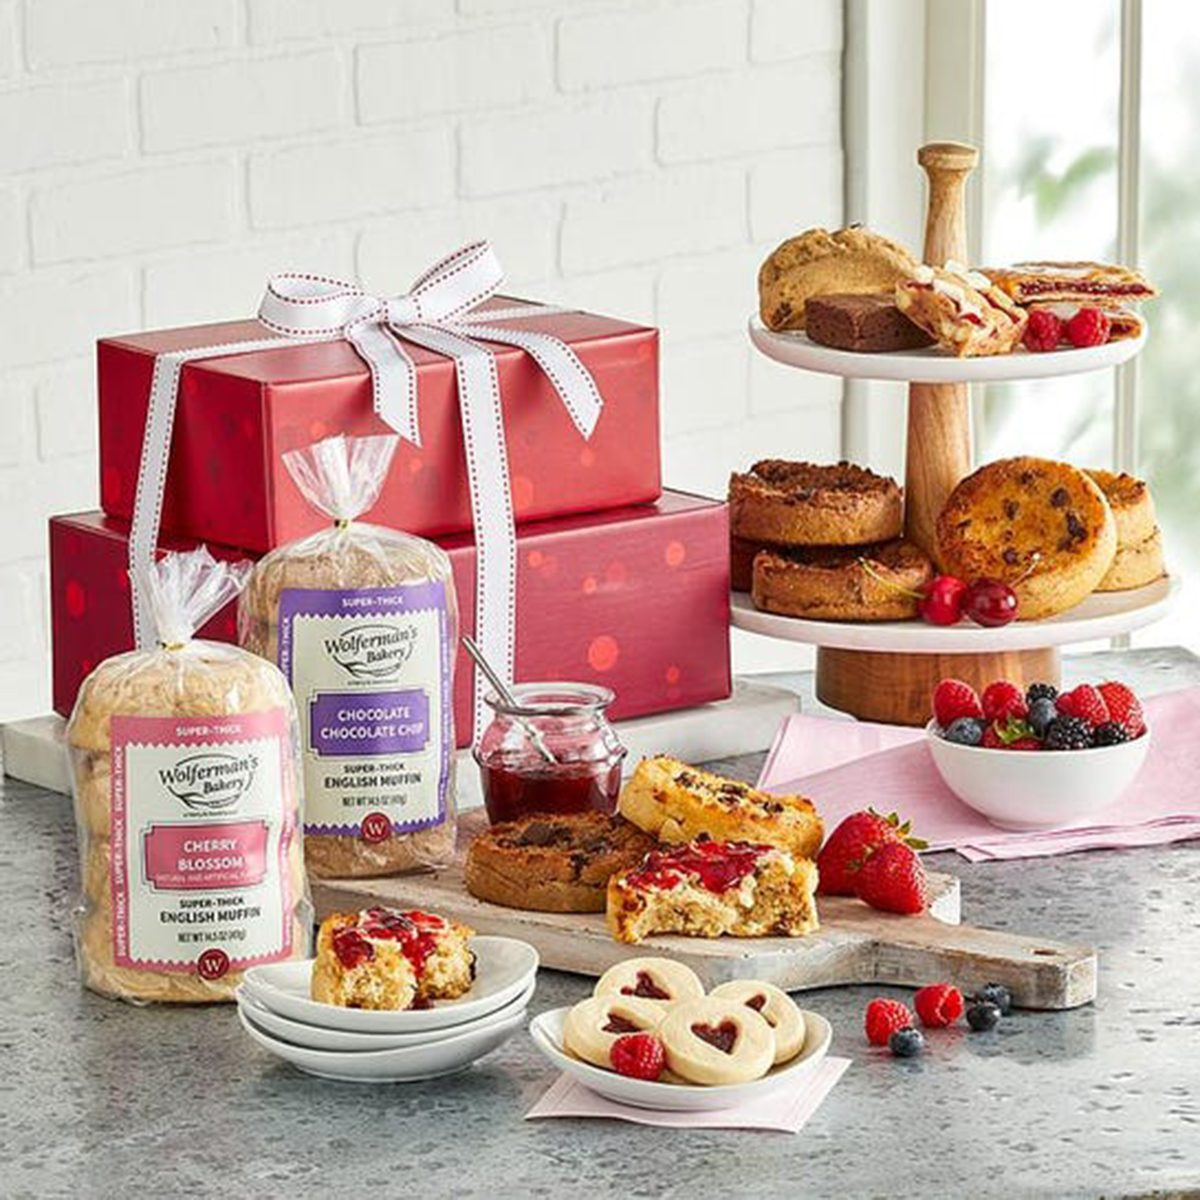 Wolfermans Bakery Valentines Day Gift Tower 1